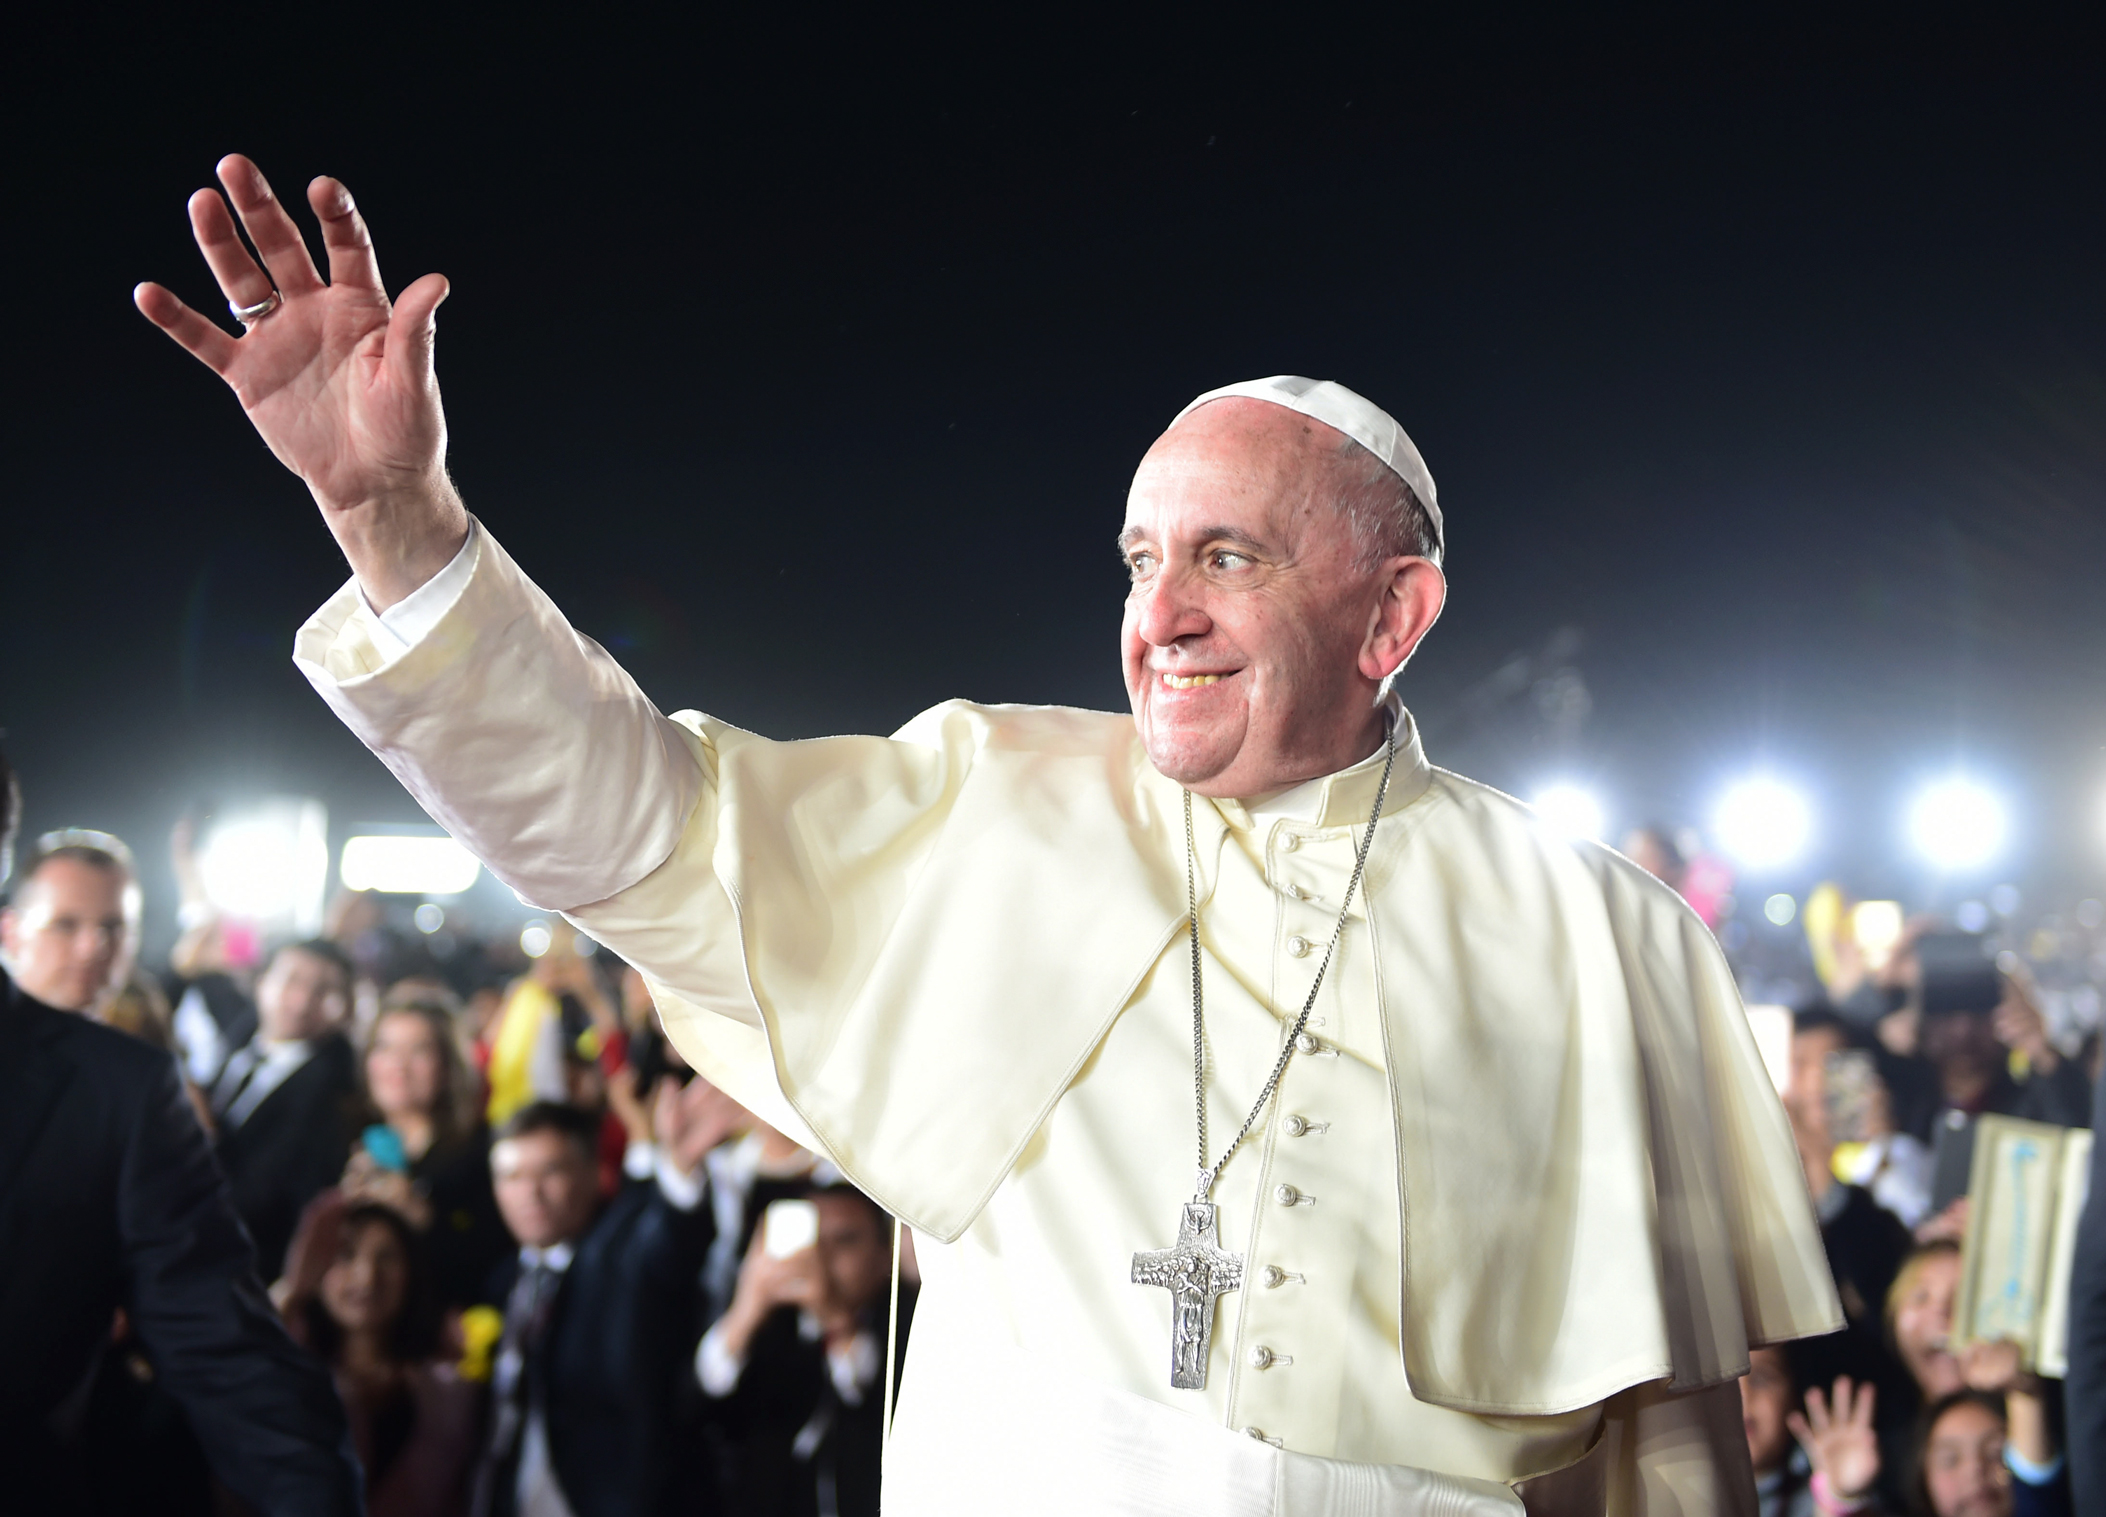 Former Mexican president, Felipe Calderón, among leaders to criticise Pope's speech